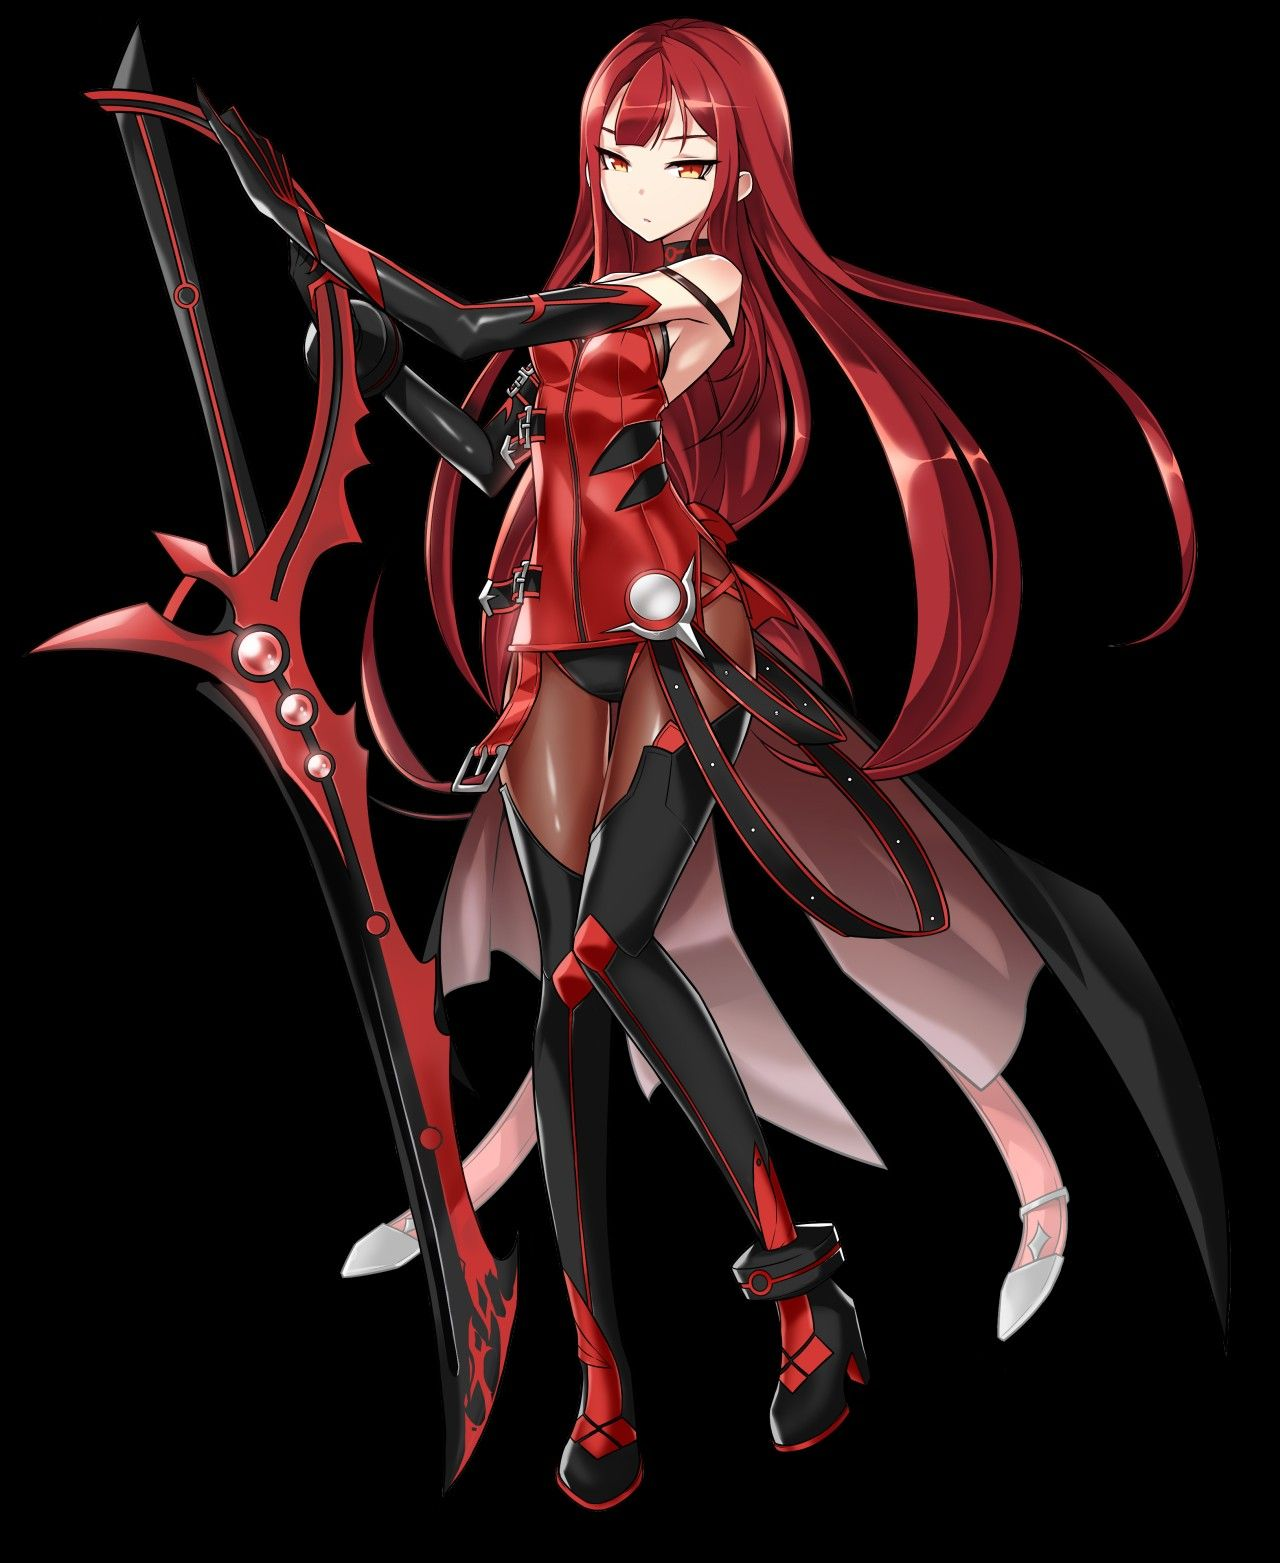 Pin by Darren Robey on legends Red hair anime characters